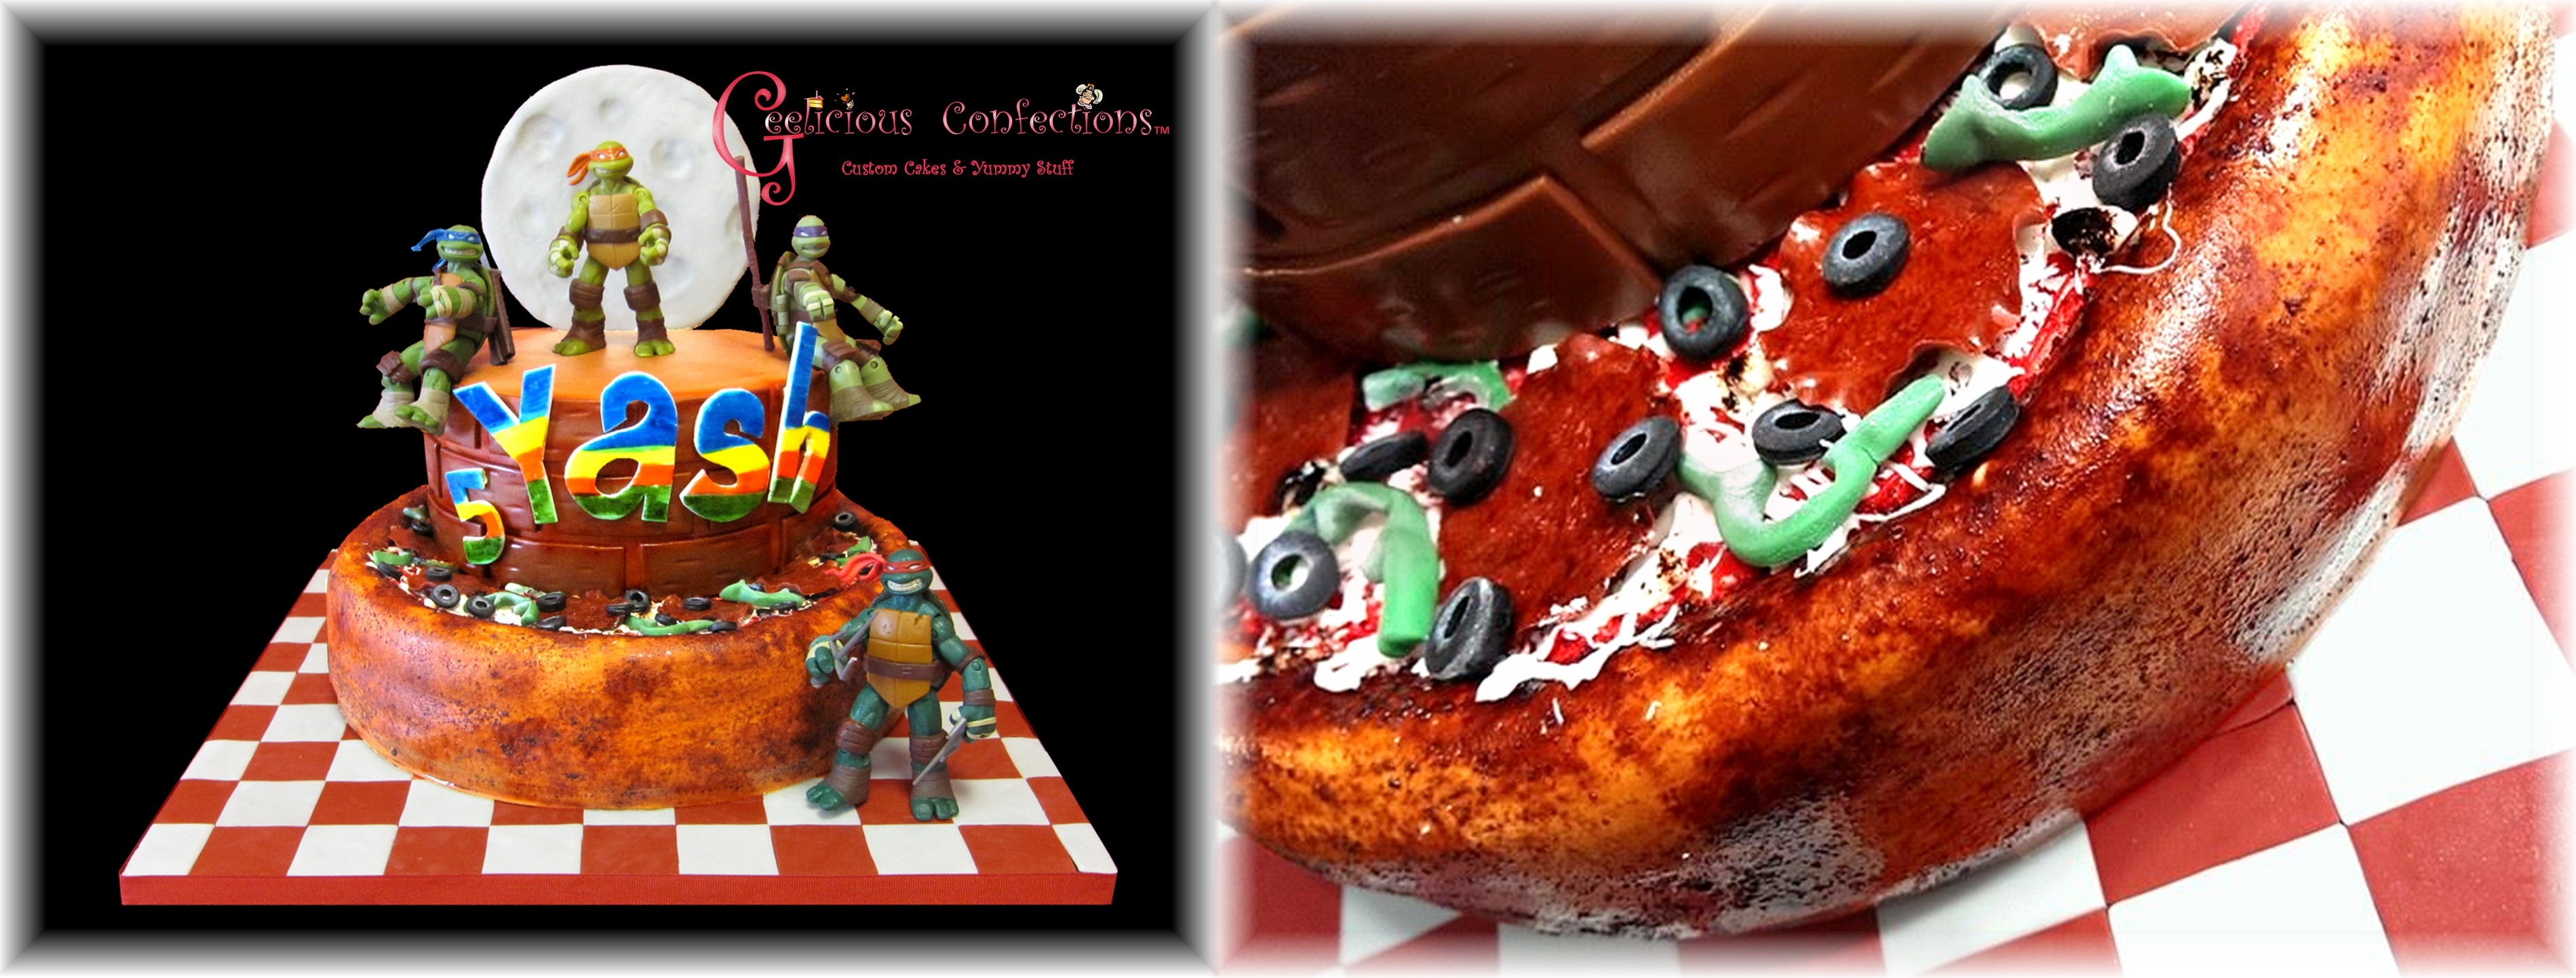 Tmnt Cake TMNT Cake theme, everything but the TMNT characters are edible. Those are keep sake toys for the birthday boy. Pizza toppings are made of...